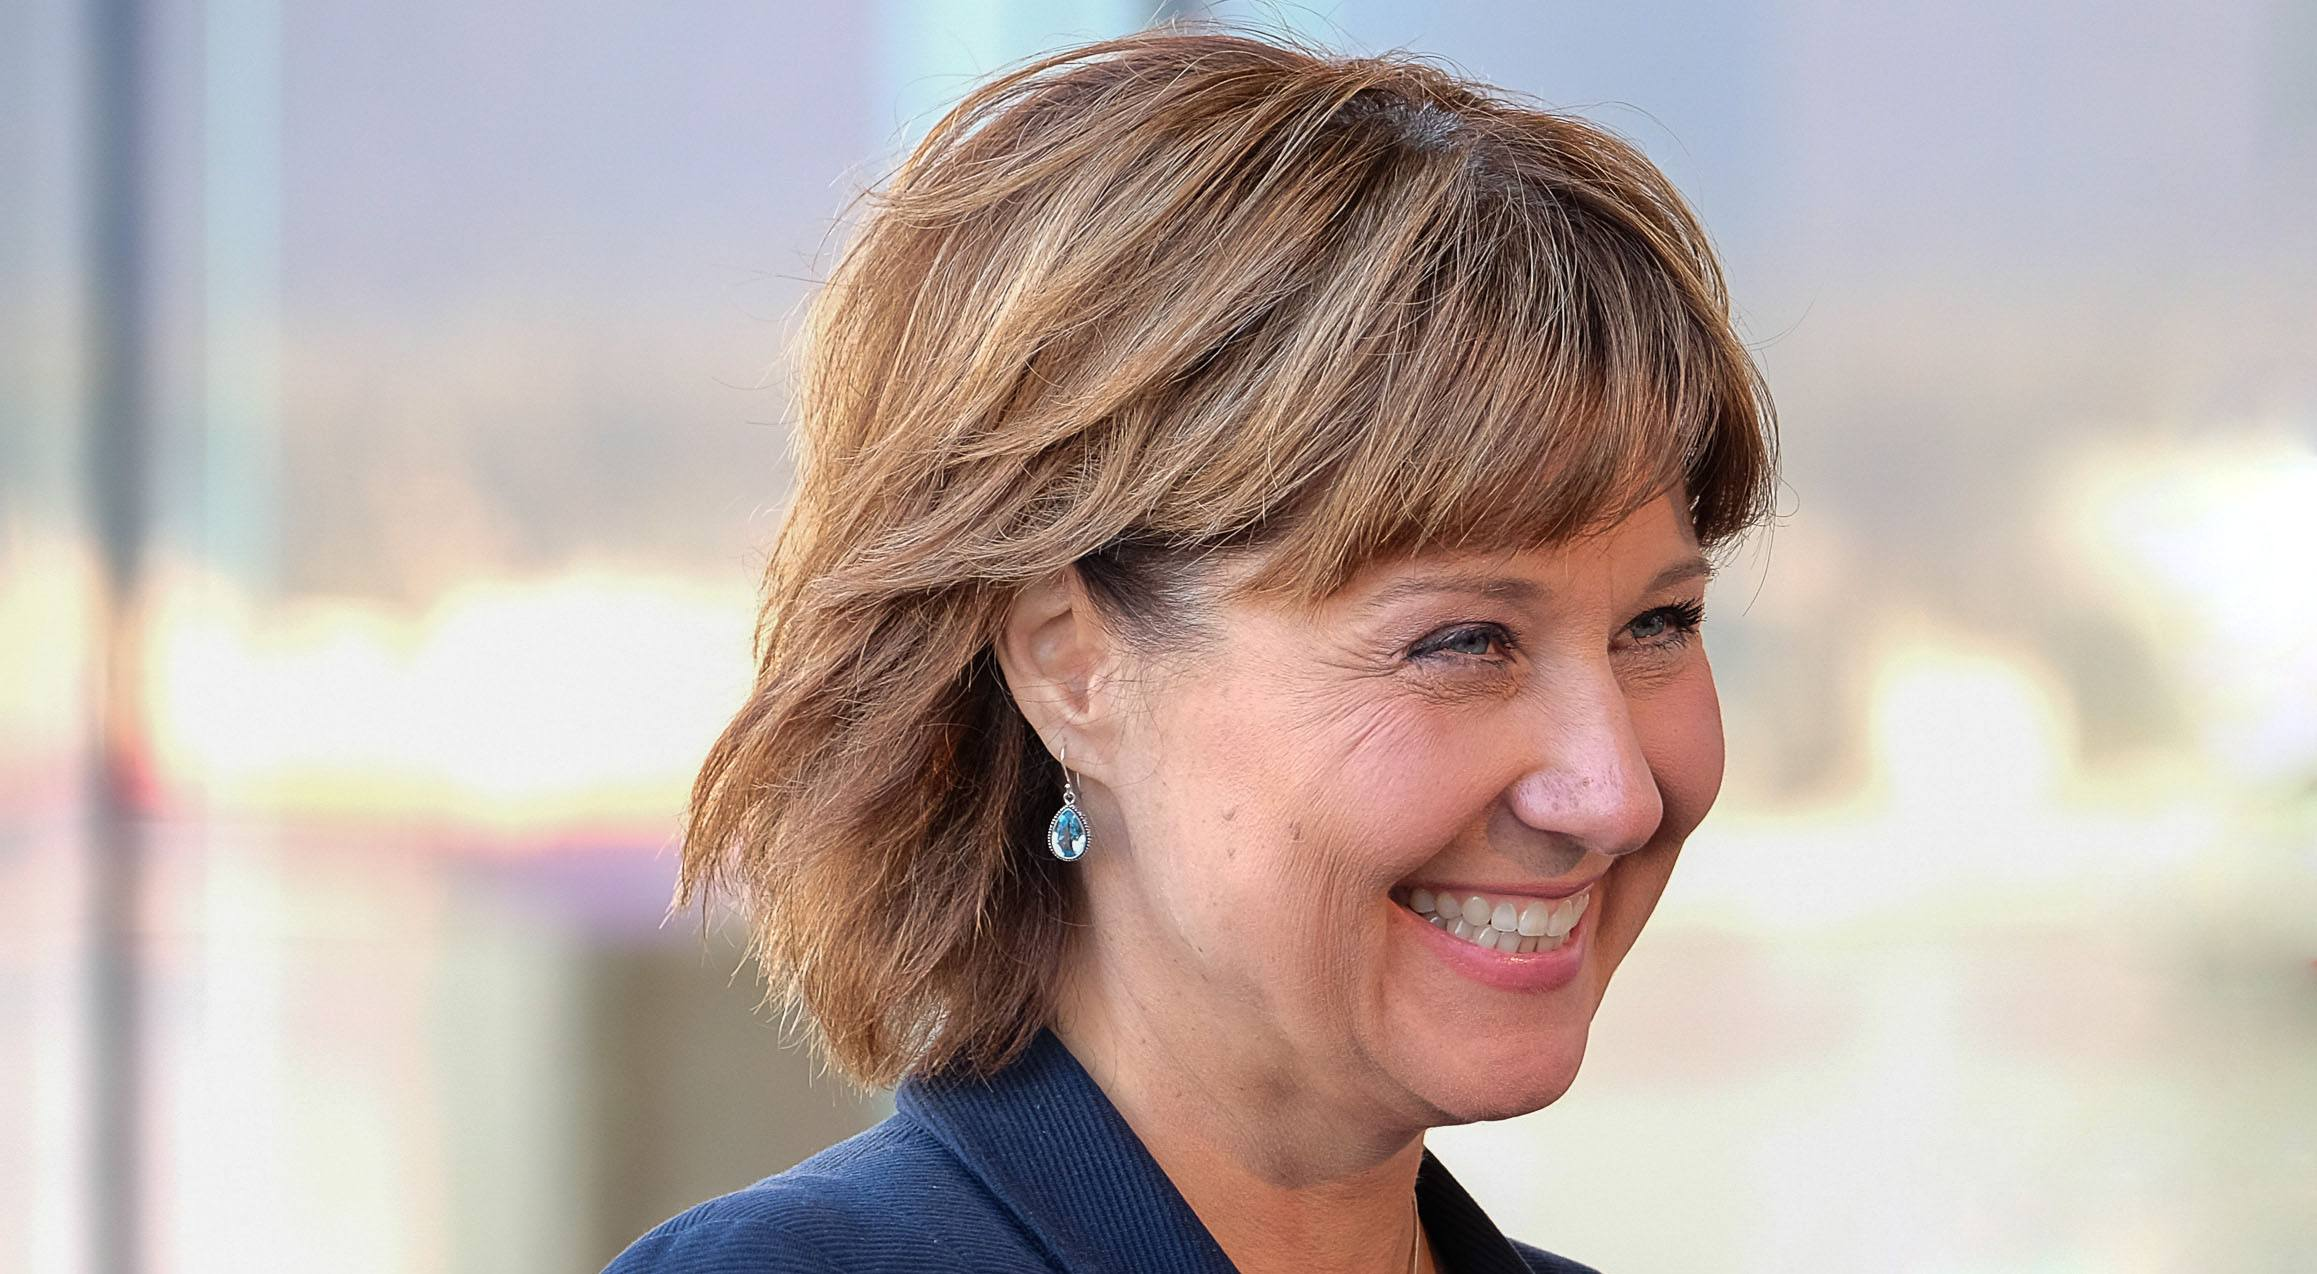 BC Premier Christy Clark to receive award at Buckingham Palace on Tuesday